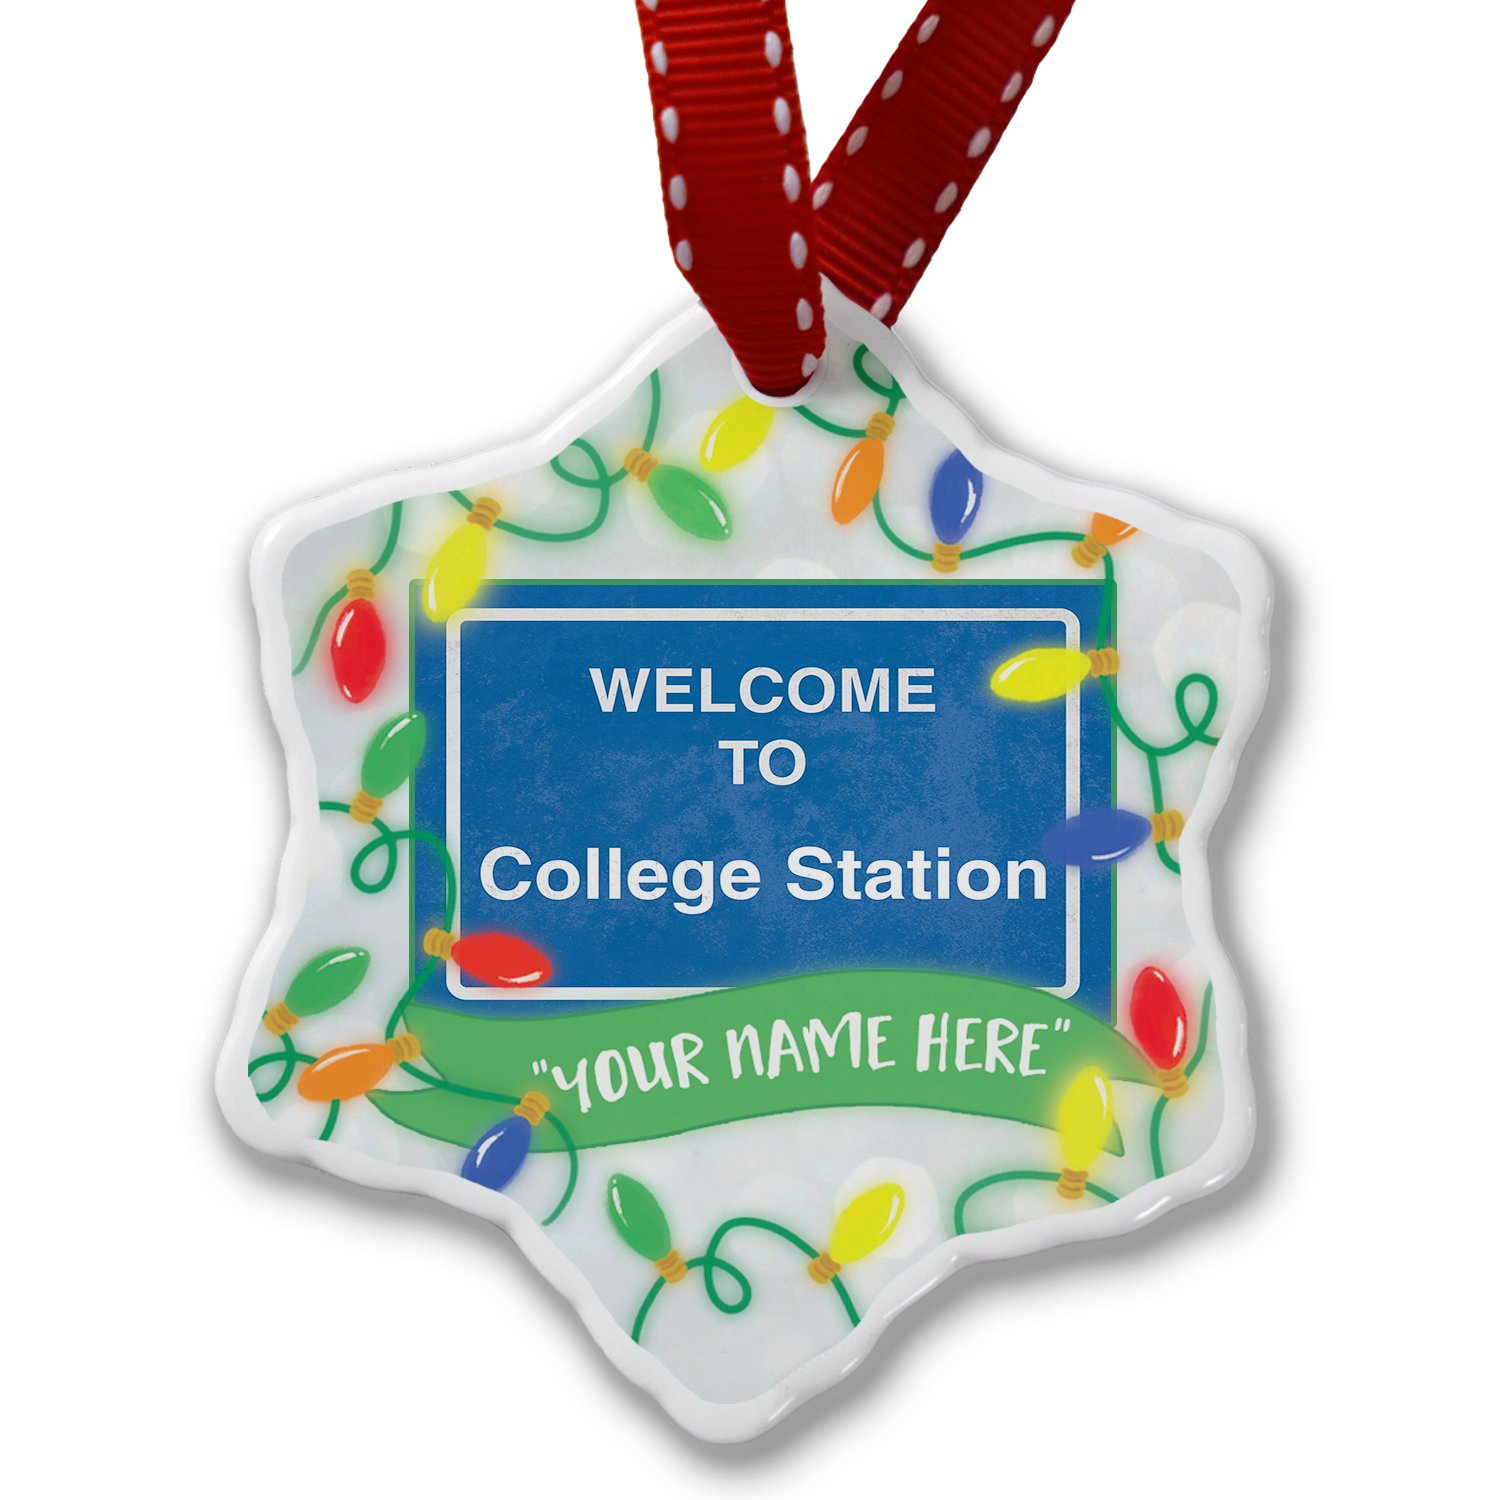 Personalized Name Christmas Ornament, Sign Welcome To College Station NEONBLOND